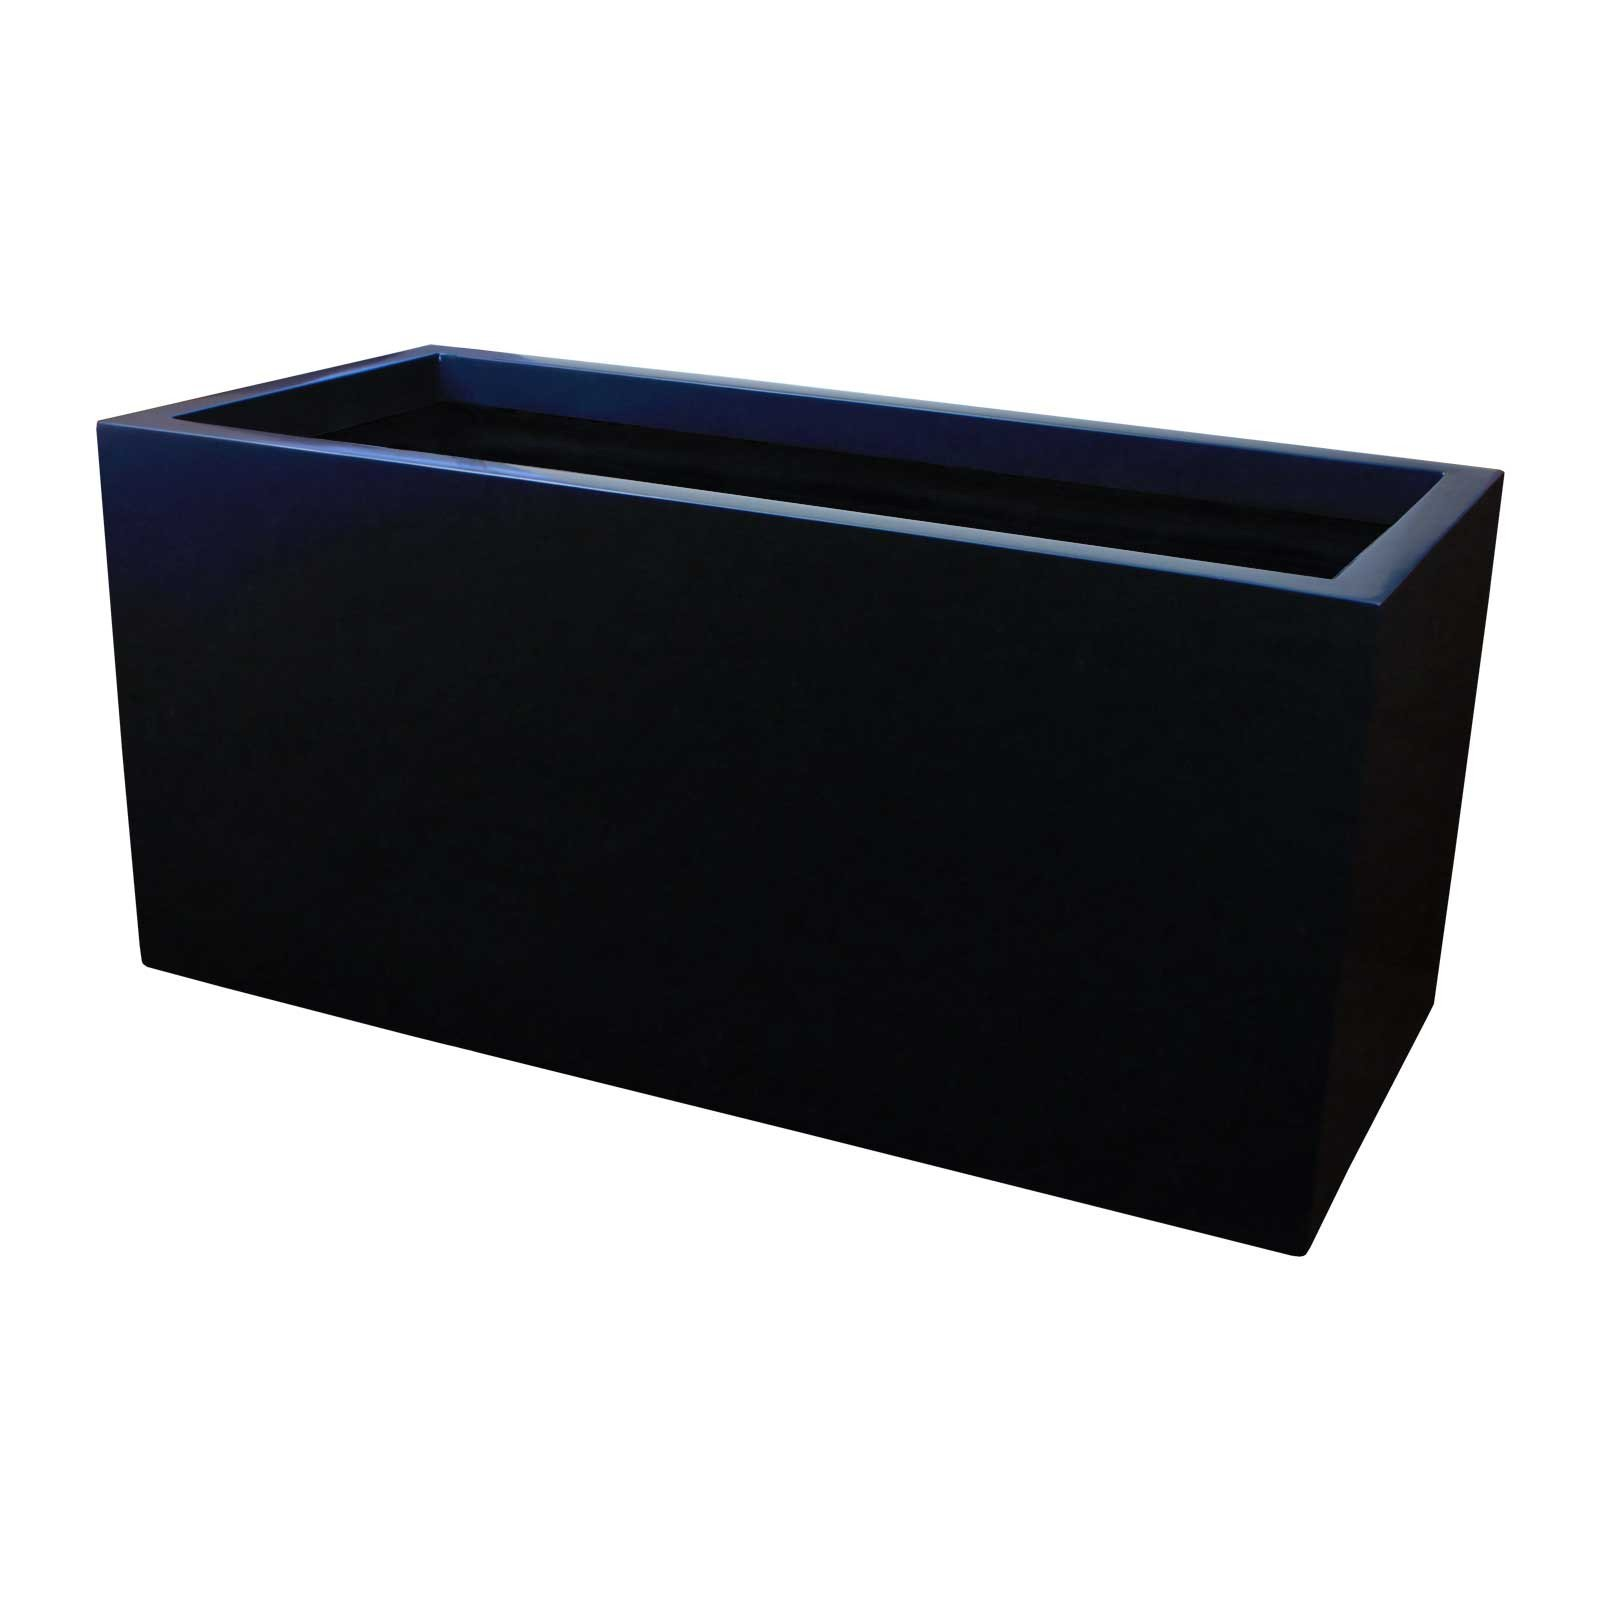 Rectangular Planter Box - 39'L x 17'W x 17'H - Badalona by Jay Scotts